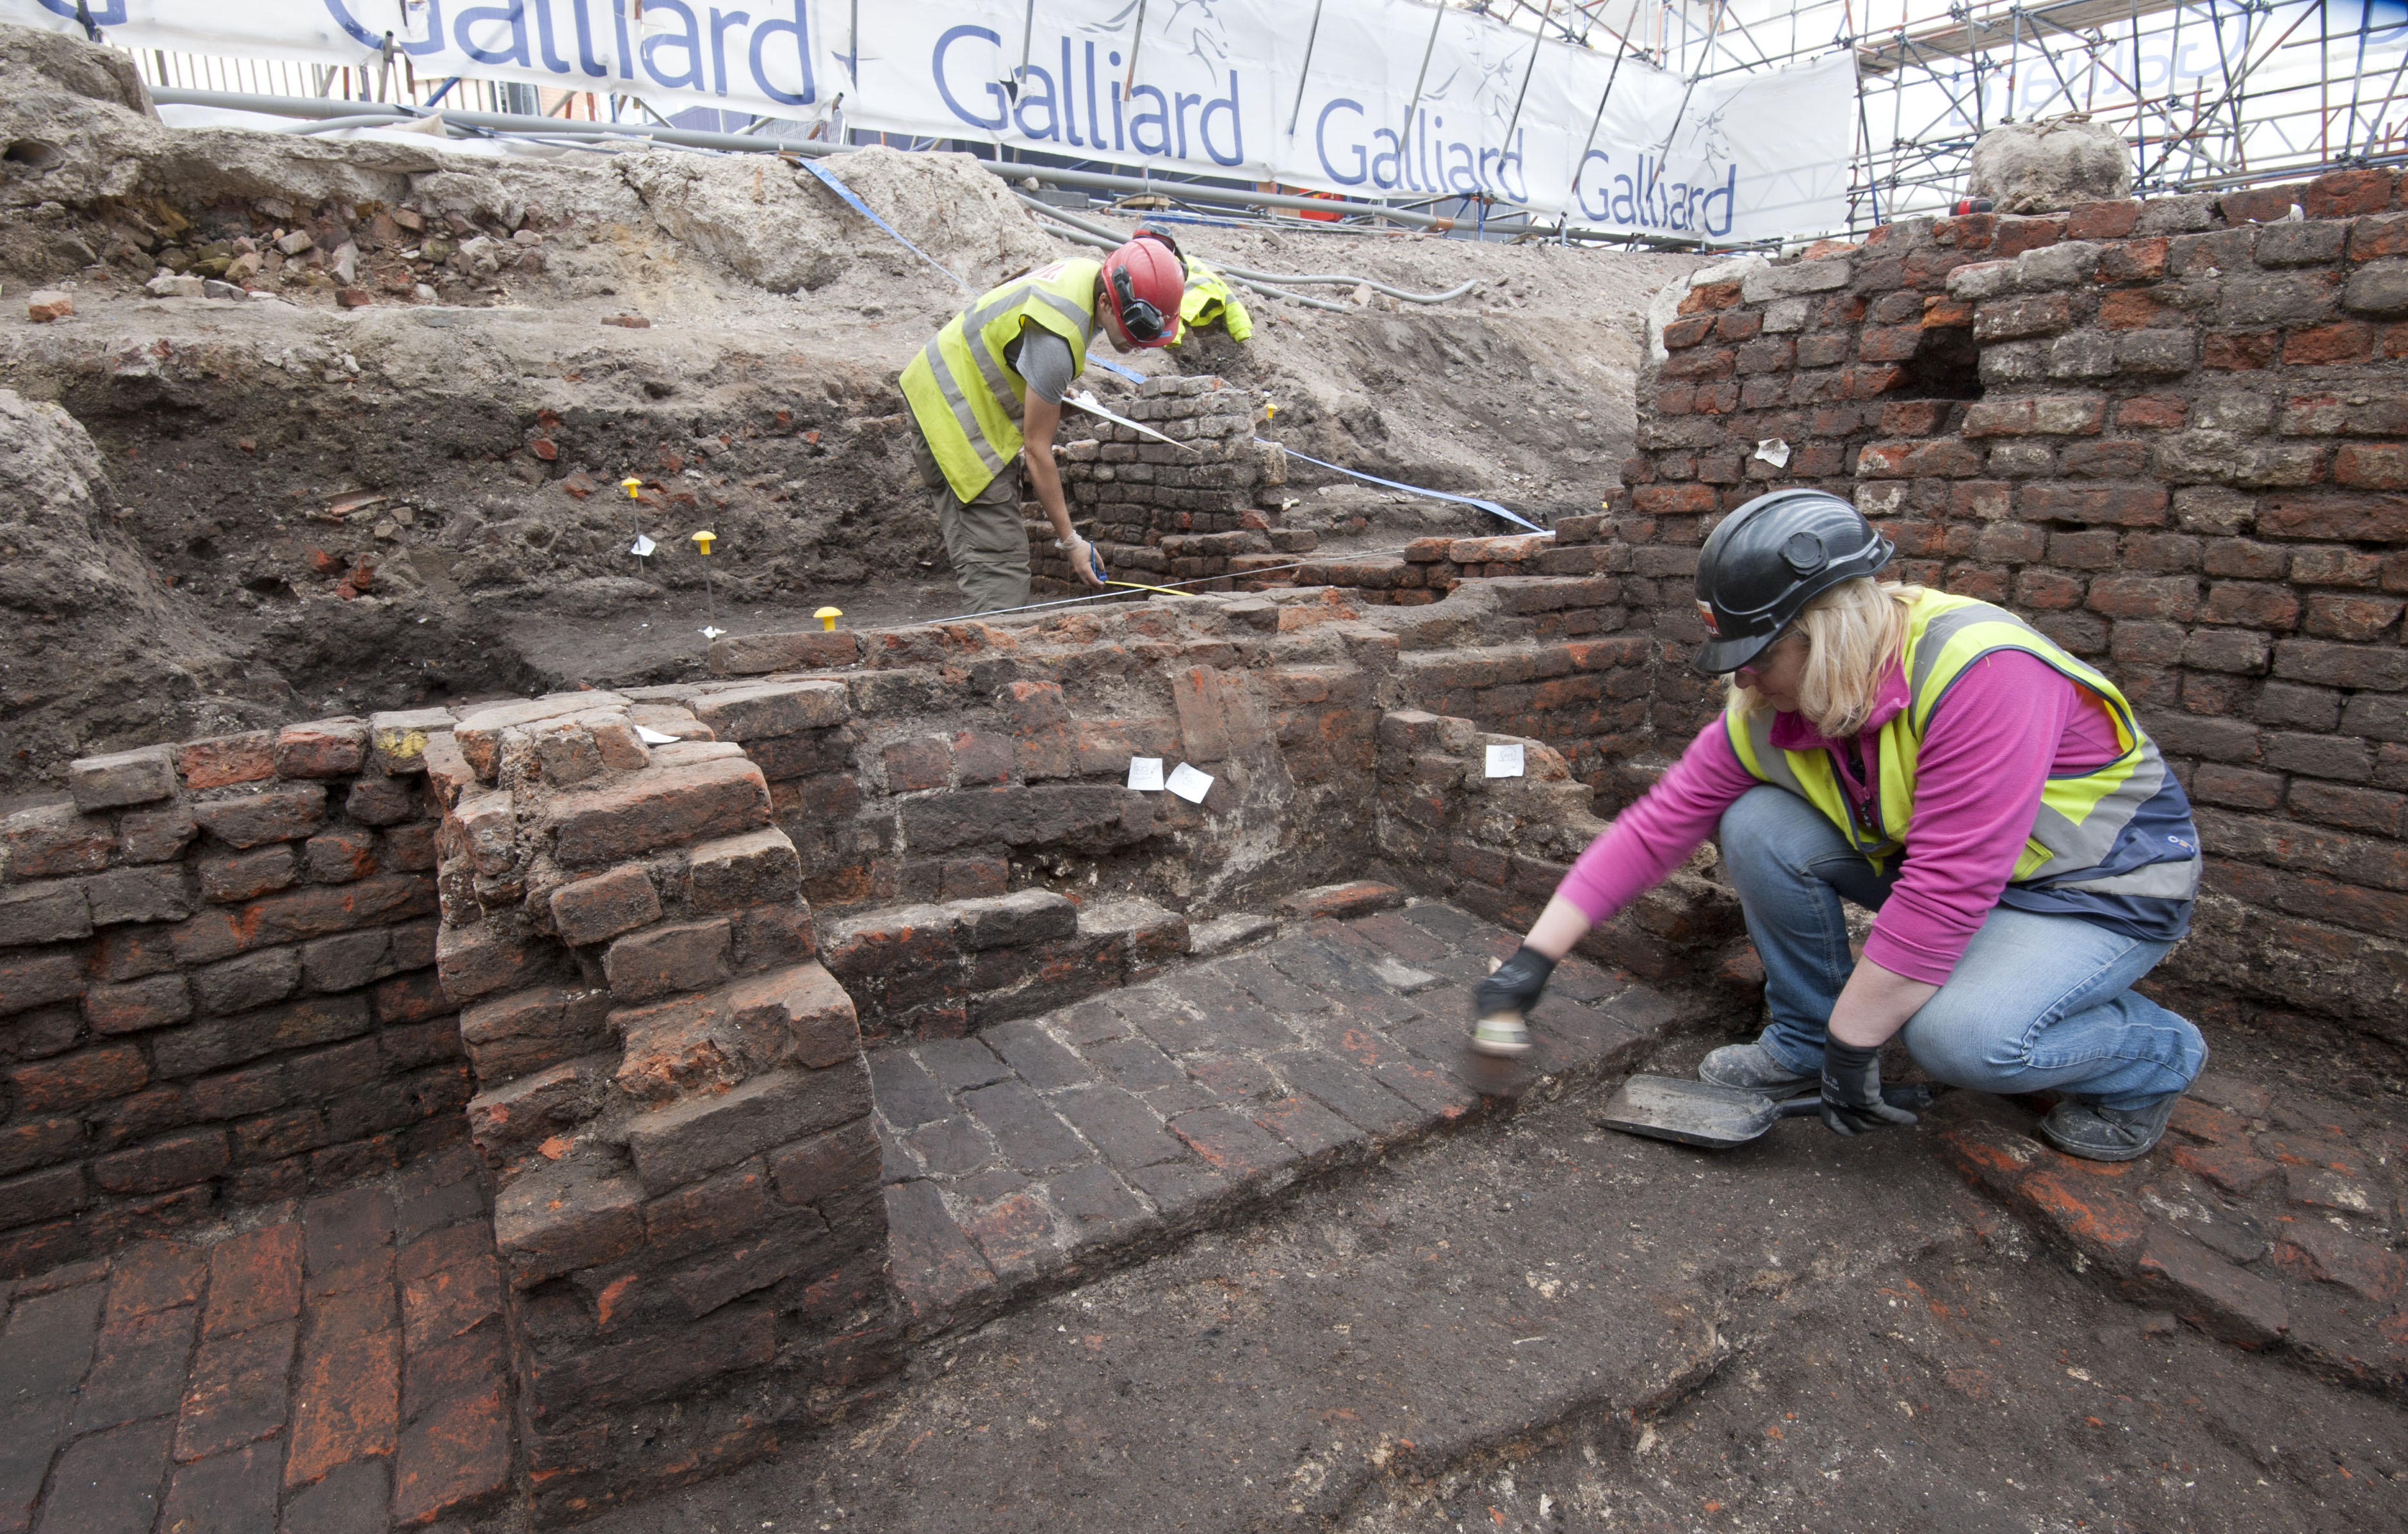 MOLA archaeologist Heather Knight excavated the Curtain in Shoreditch (MOLA/PA)